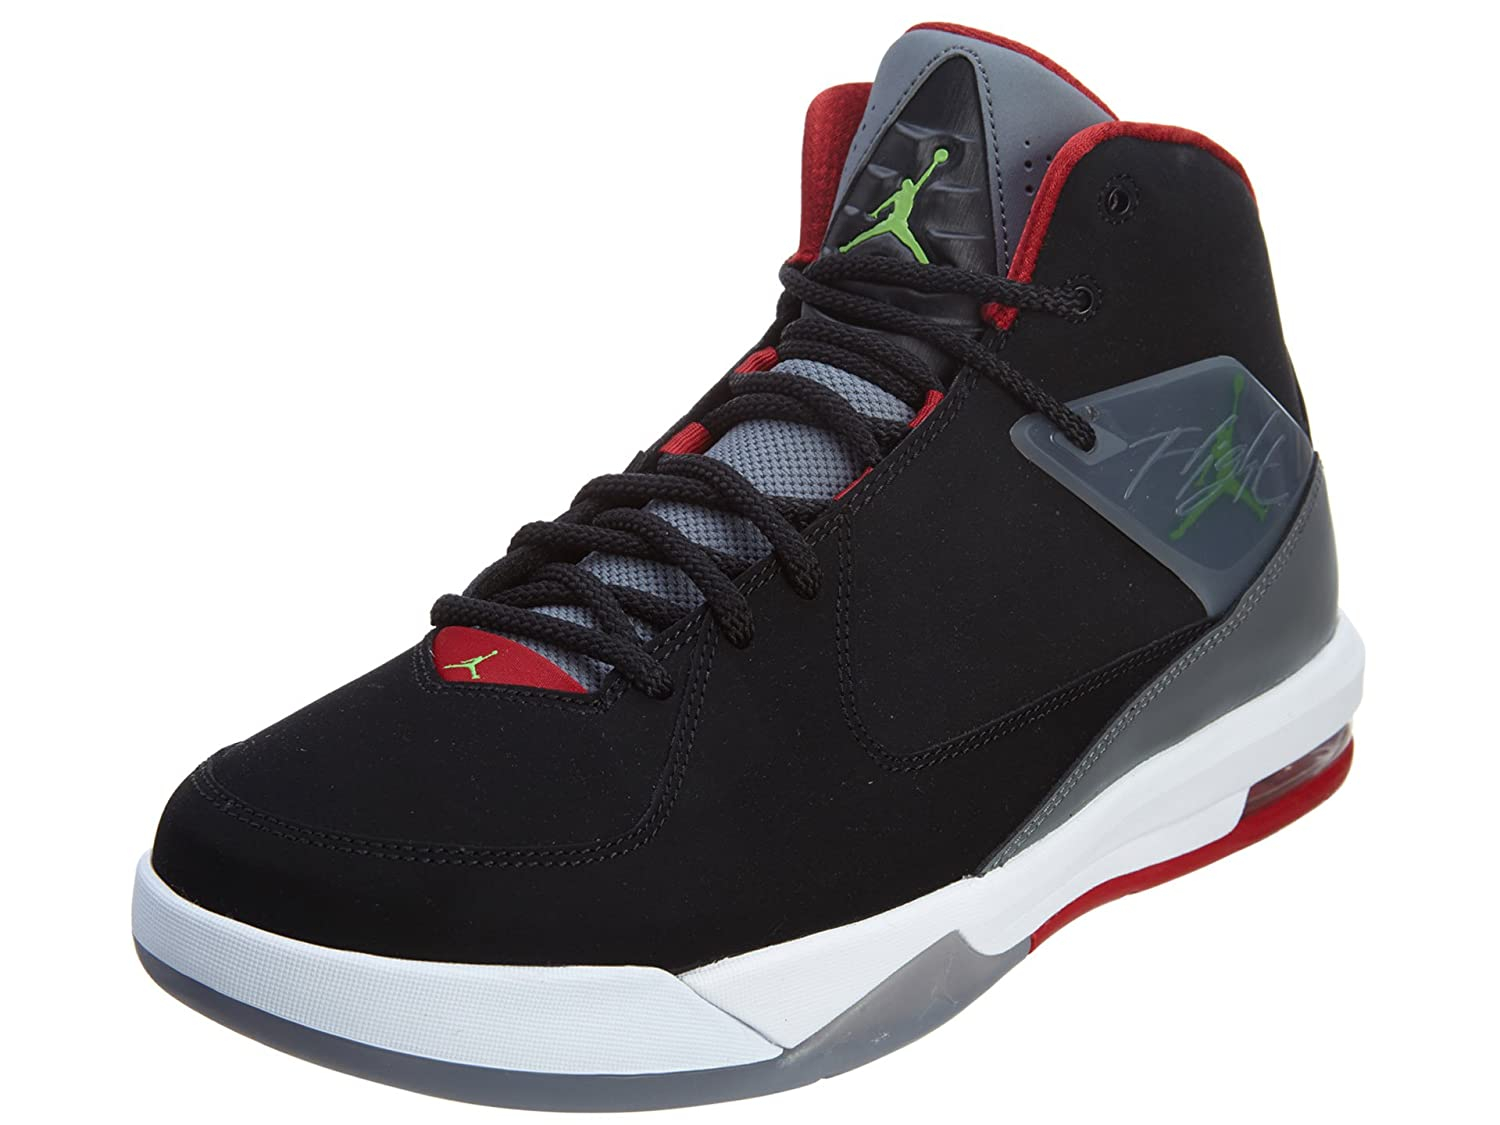 Amazoncom nike air jordan air incline mens hi top basketball trainers 705796 sneakers shoes us 105 black green pulse cool grey gym red 013 Fashion